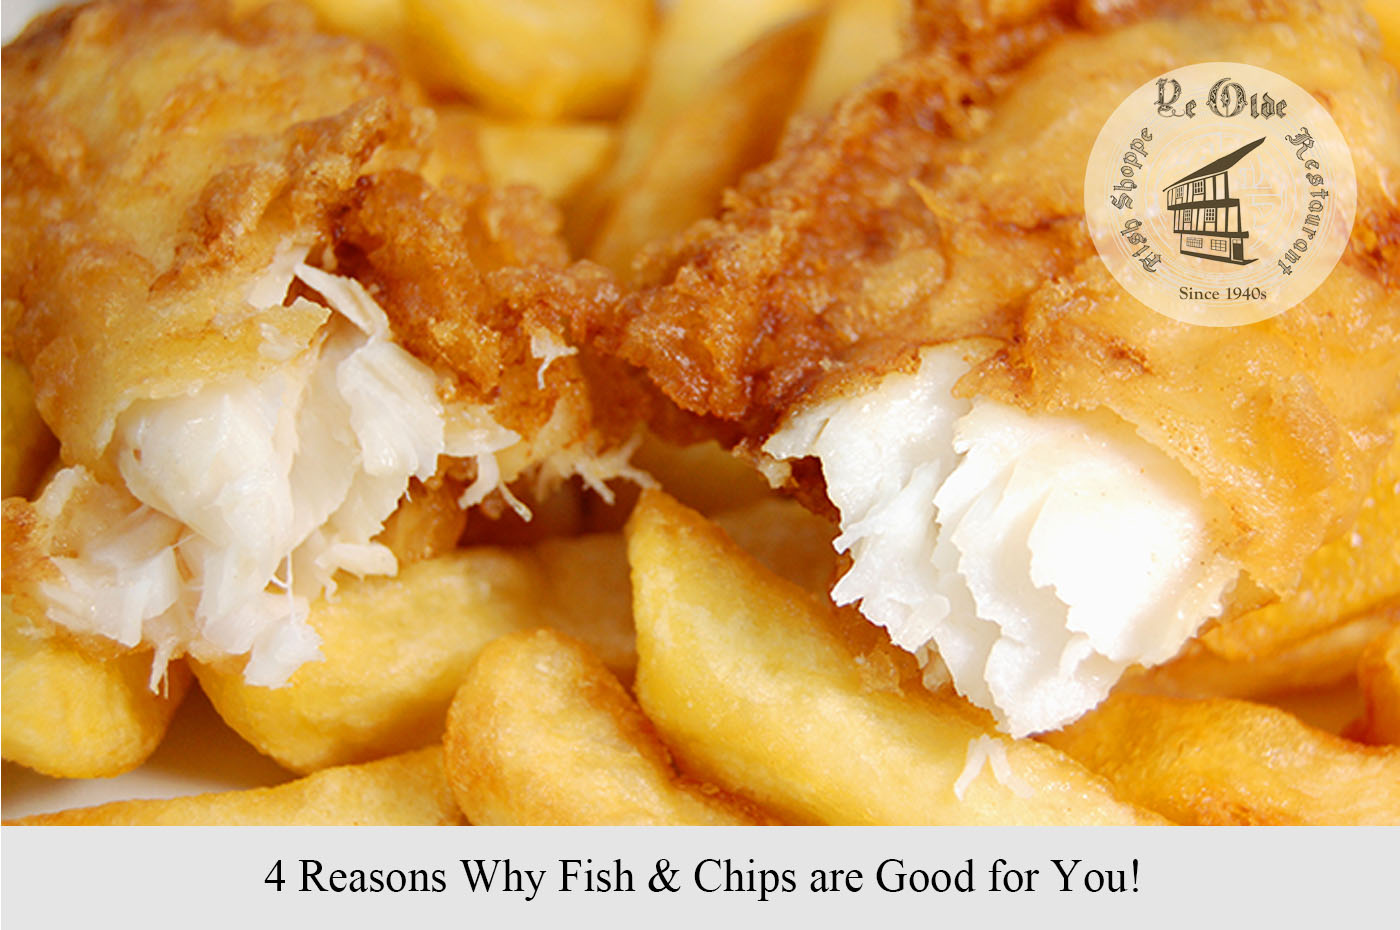 4 Reasons Why Fish & Chips are Good for You!